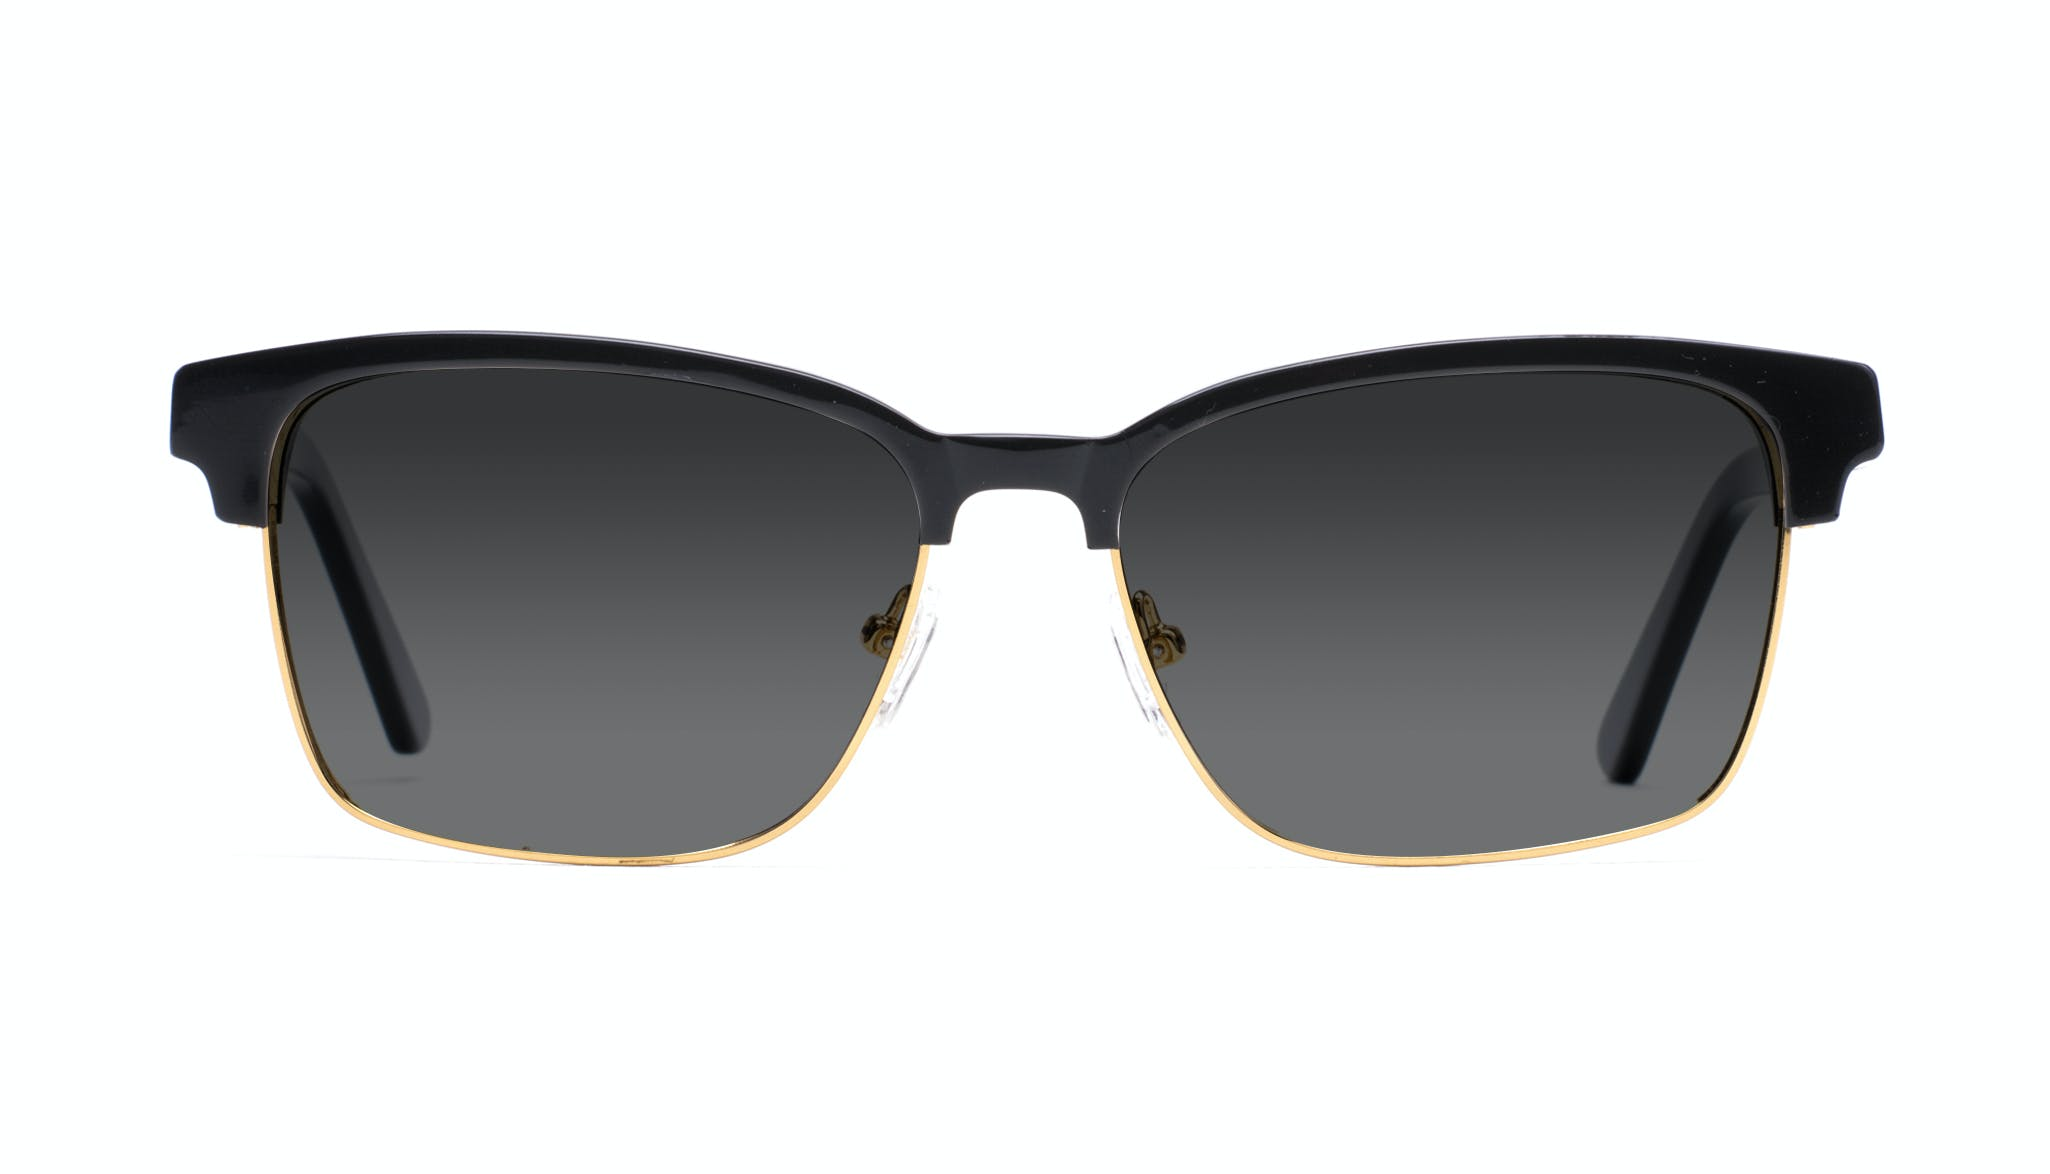 Affordable Fashion Glasses Rectangle Square Sunglasses Men Gallery Black Front